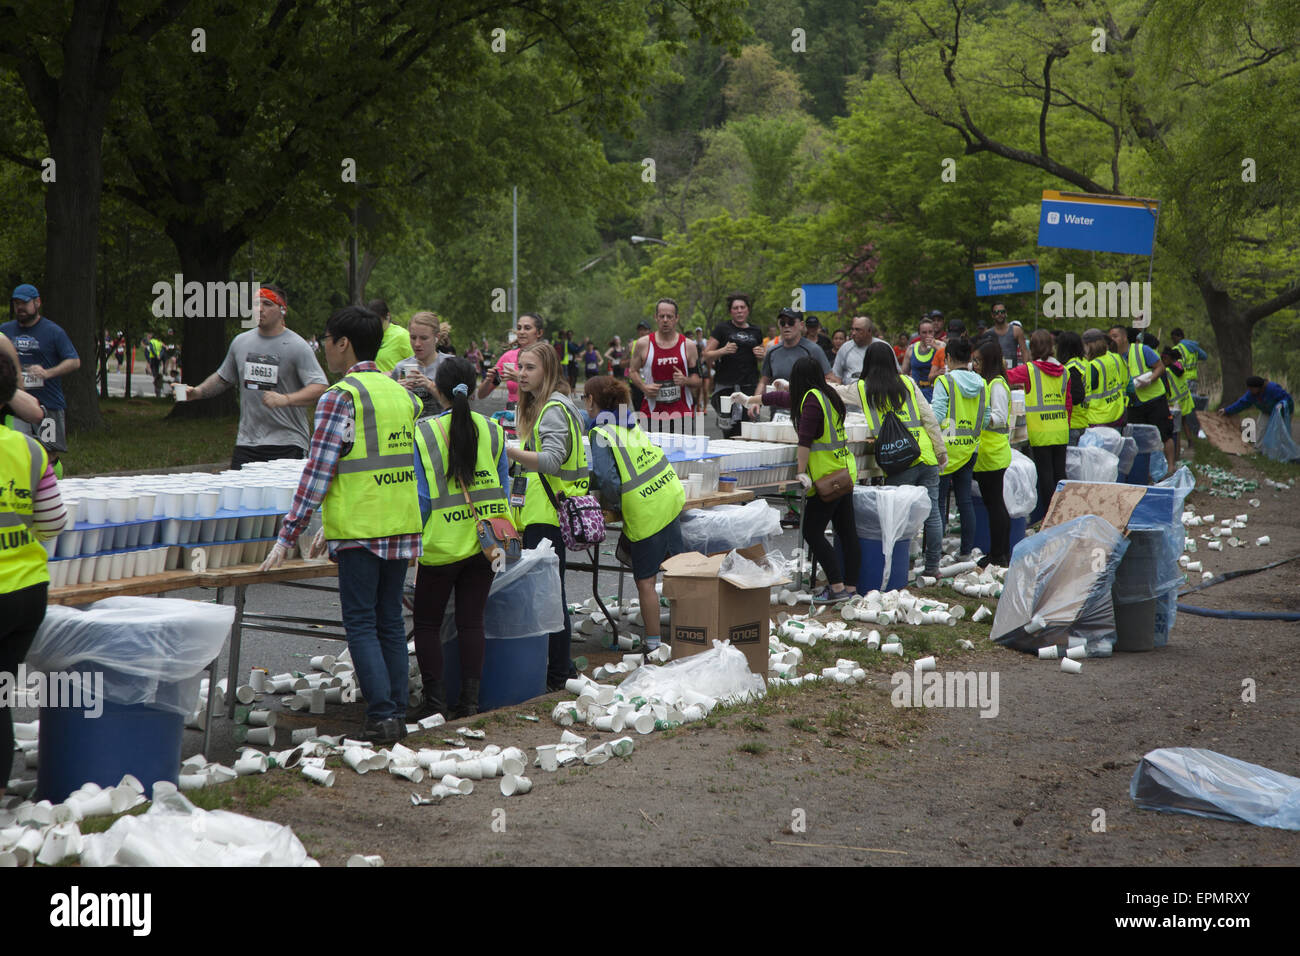 Volunteers give out water to runners at the Brooklyn ½ Marathon in Prospect Park at the halfway point of the - Stock Image